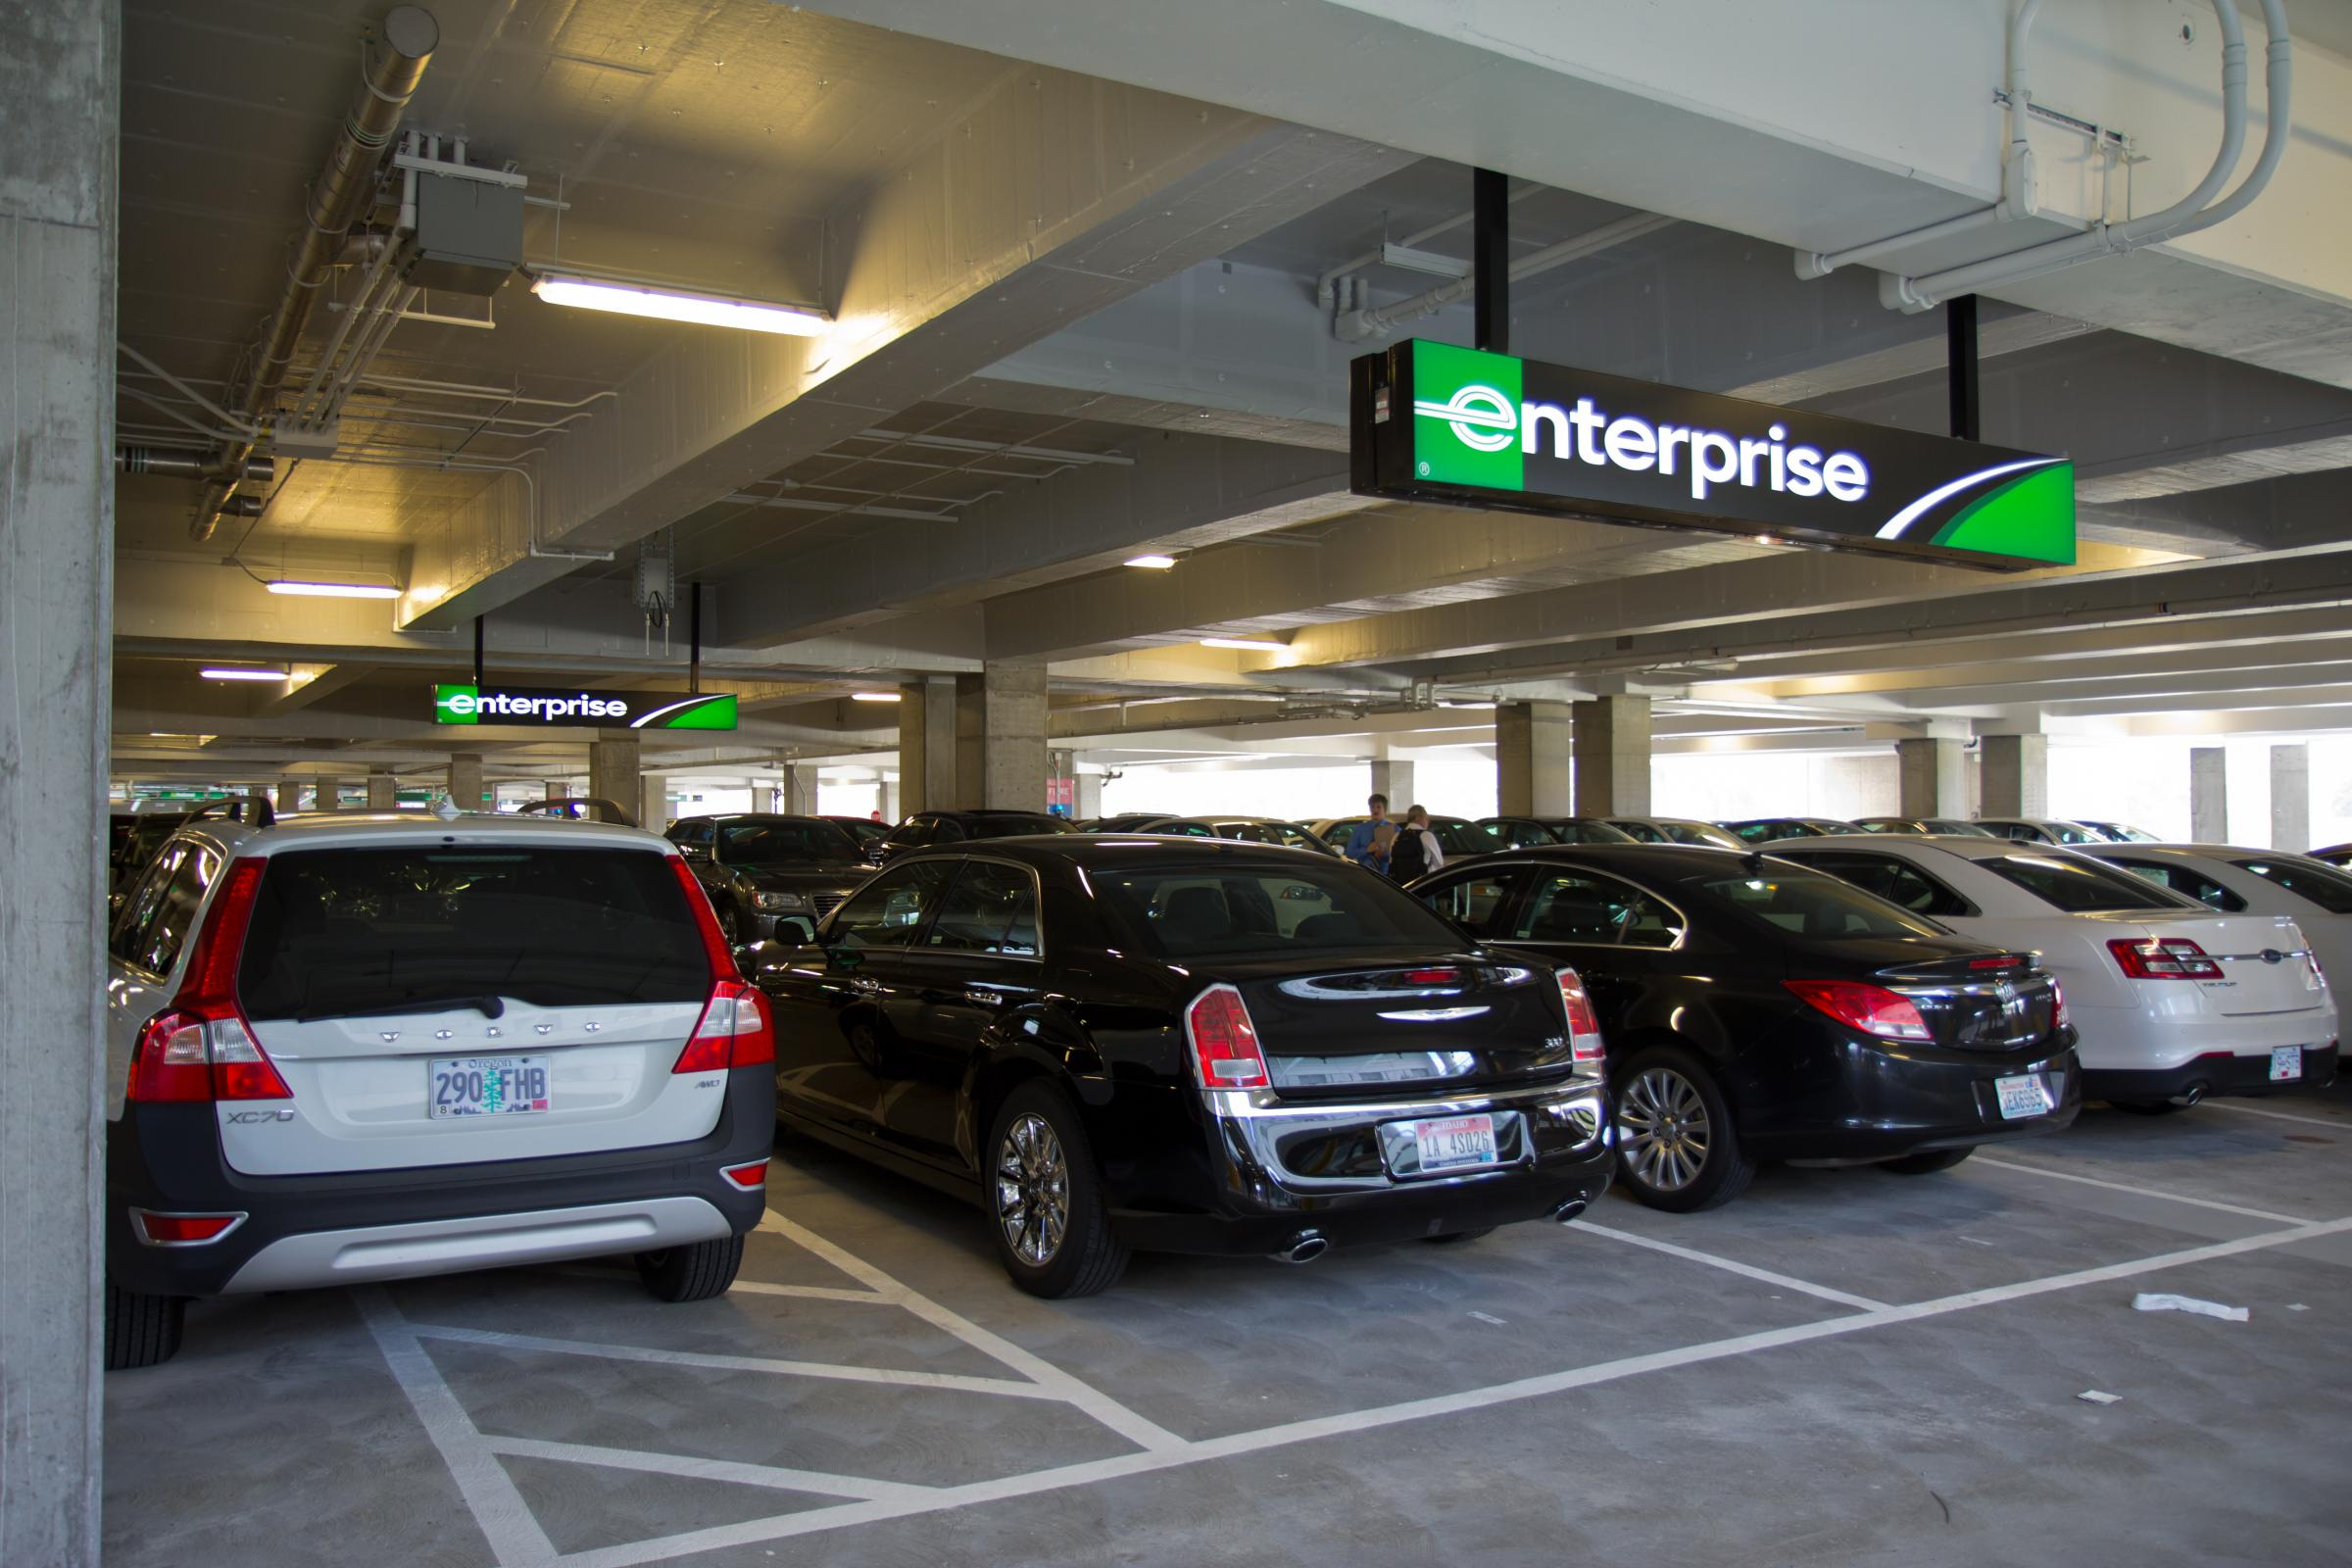 Jfk Rental Car Return Enterprise